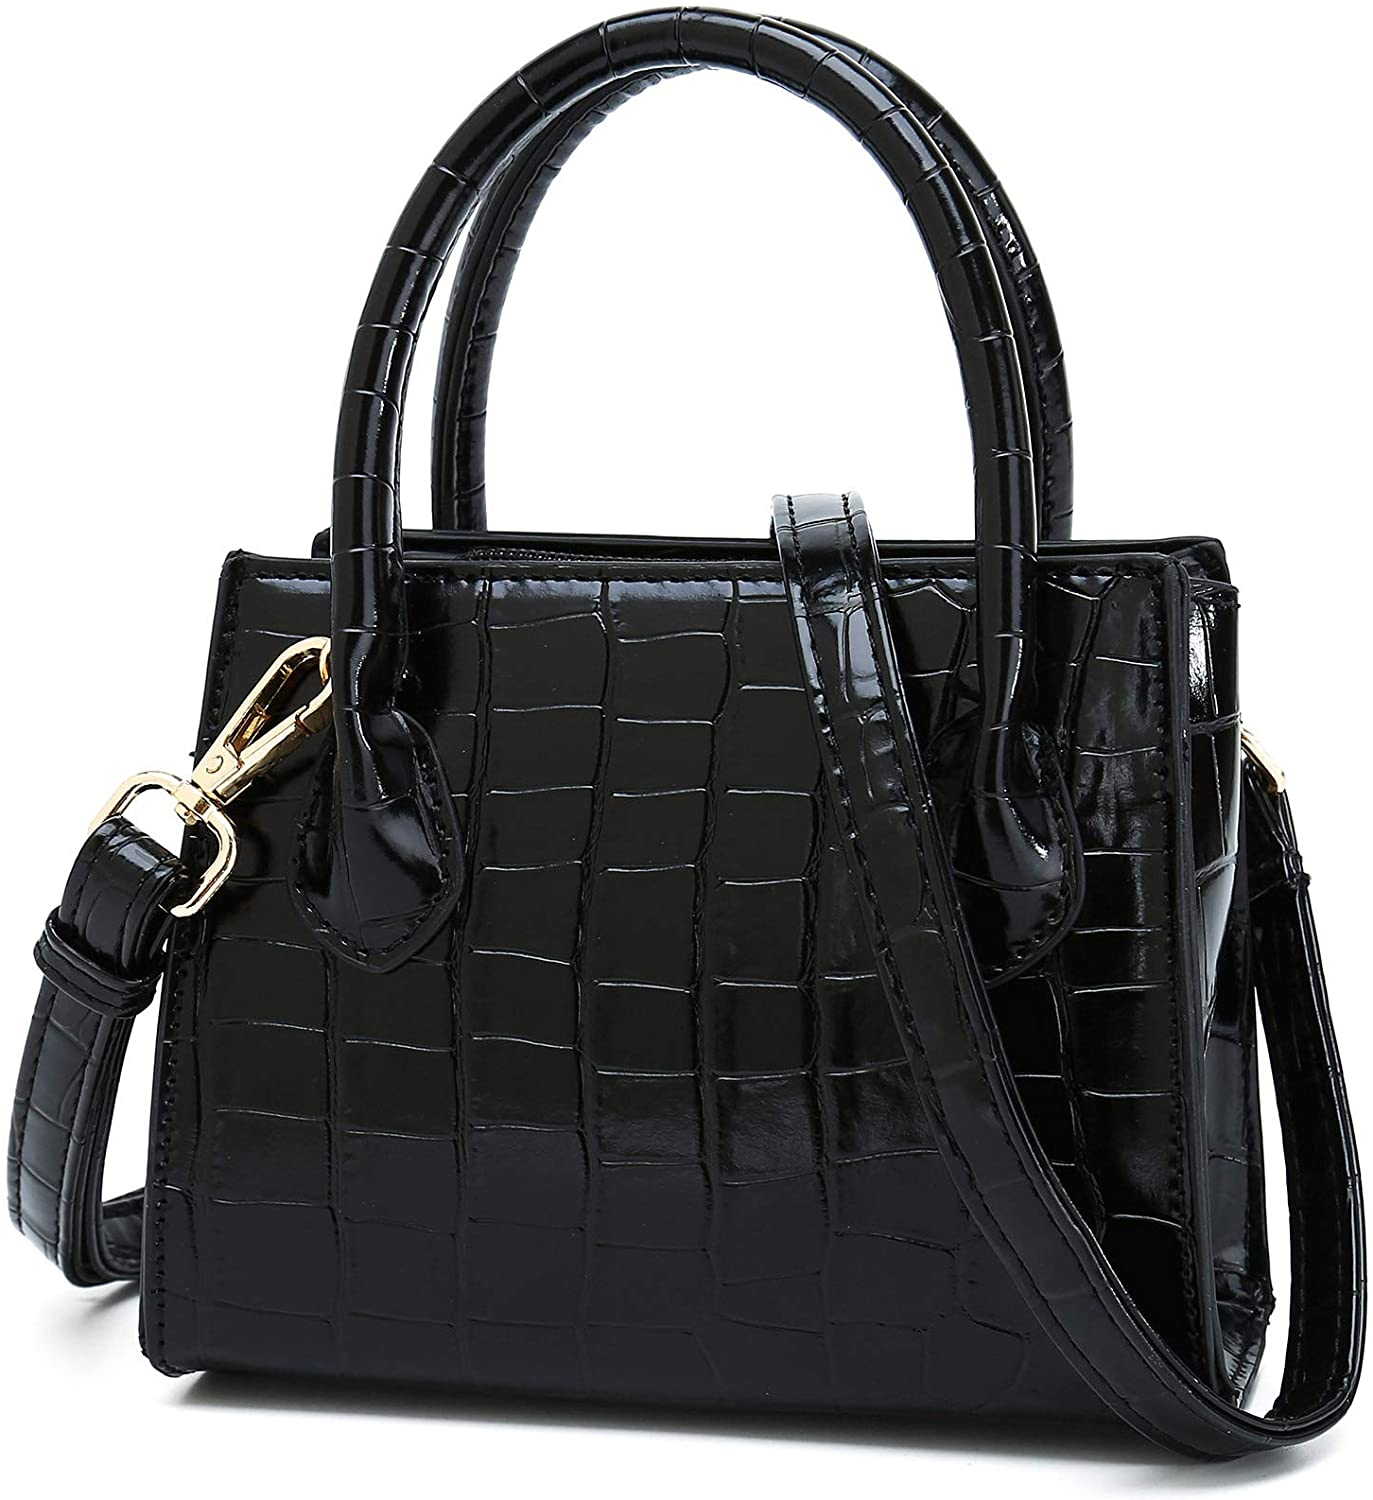 CATMICOO Trendy Mini Purse for Women, Small Handbag and Shoulder Bag with Crocodile Pattern